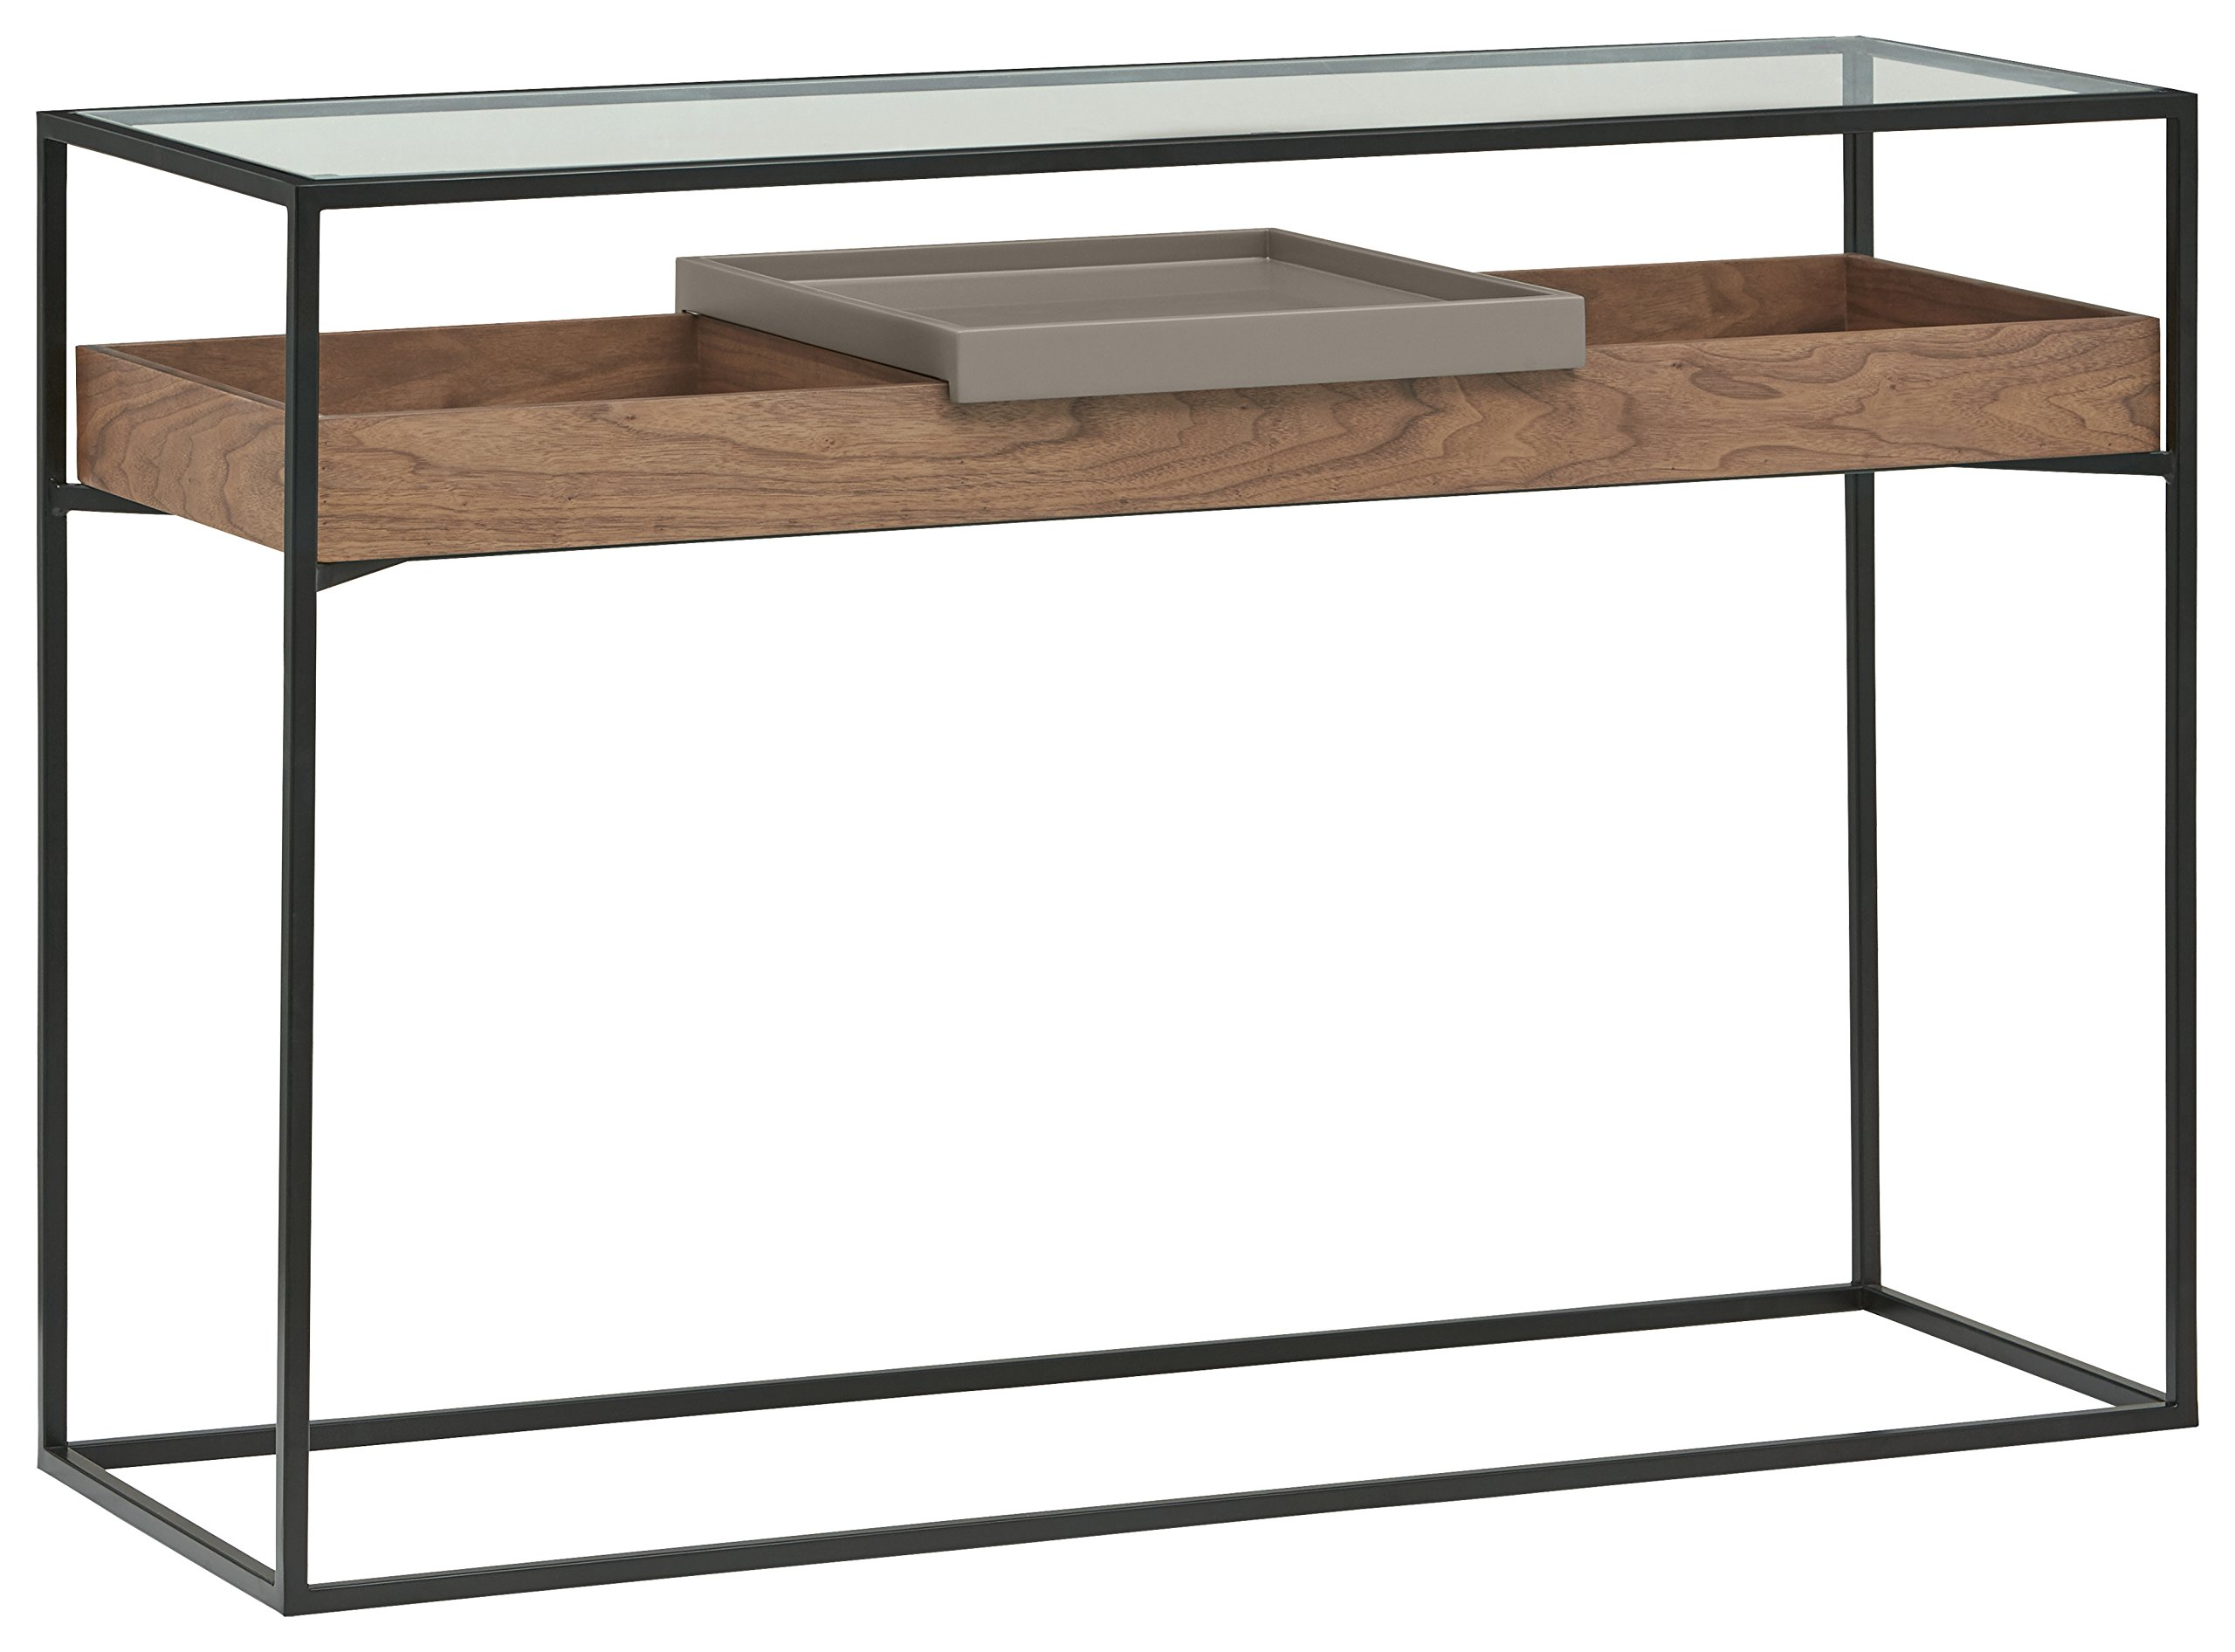 Rivet King Street Industrial Cabinet Media Console Table With Functional Storage, Walnut, Black Metal, Glass